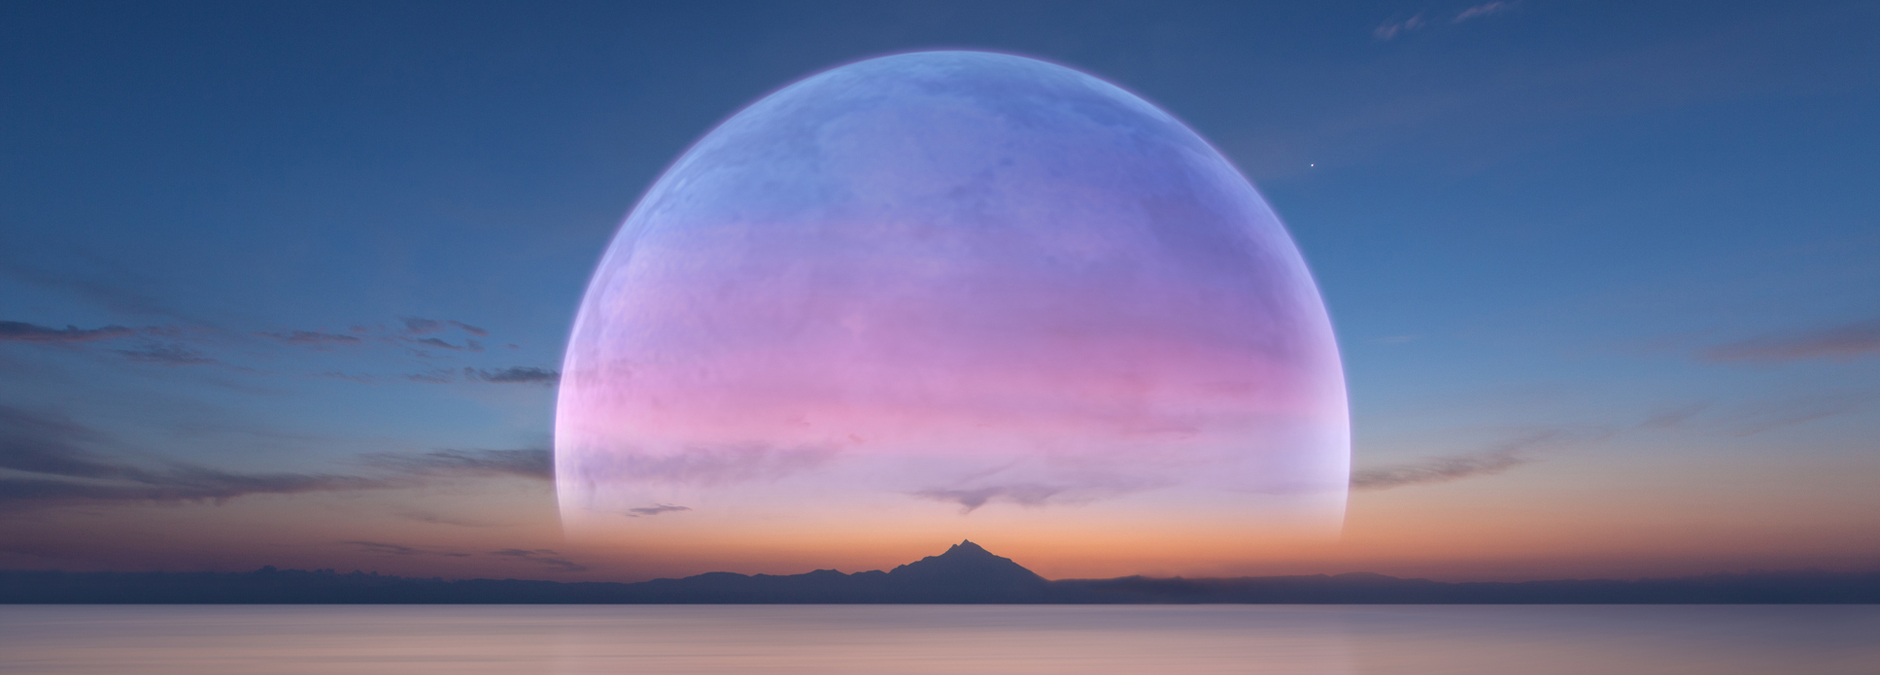 April's Full Moon Will Not Be Turning Pink But It Will Be Super!image preview